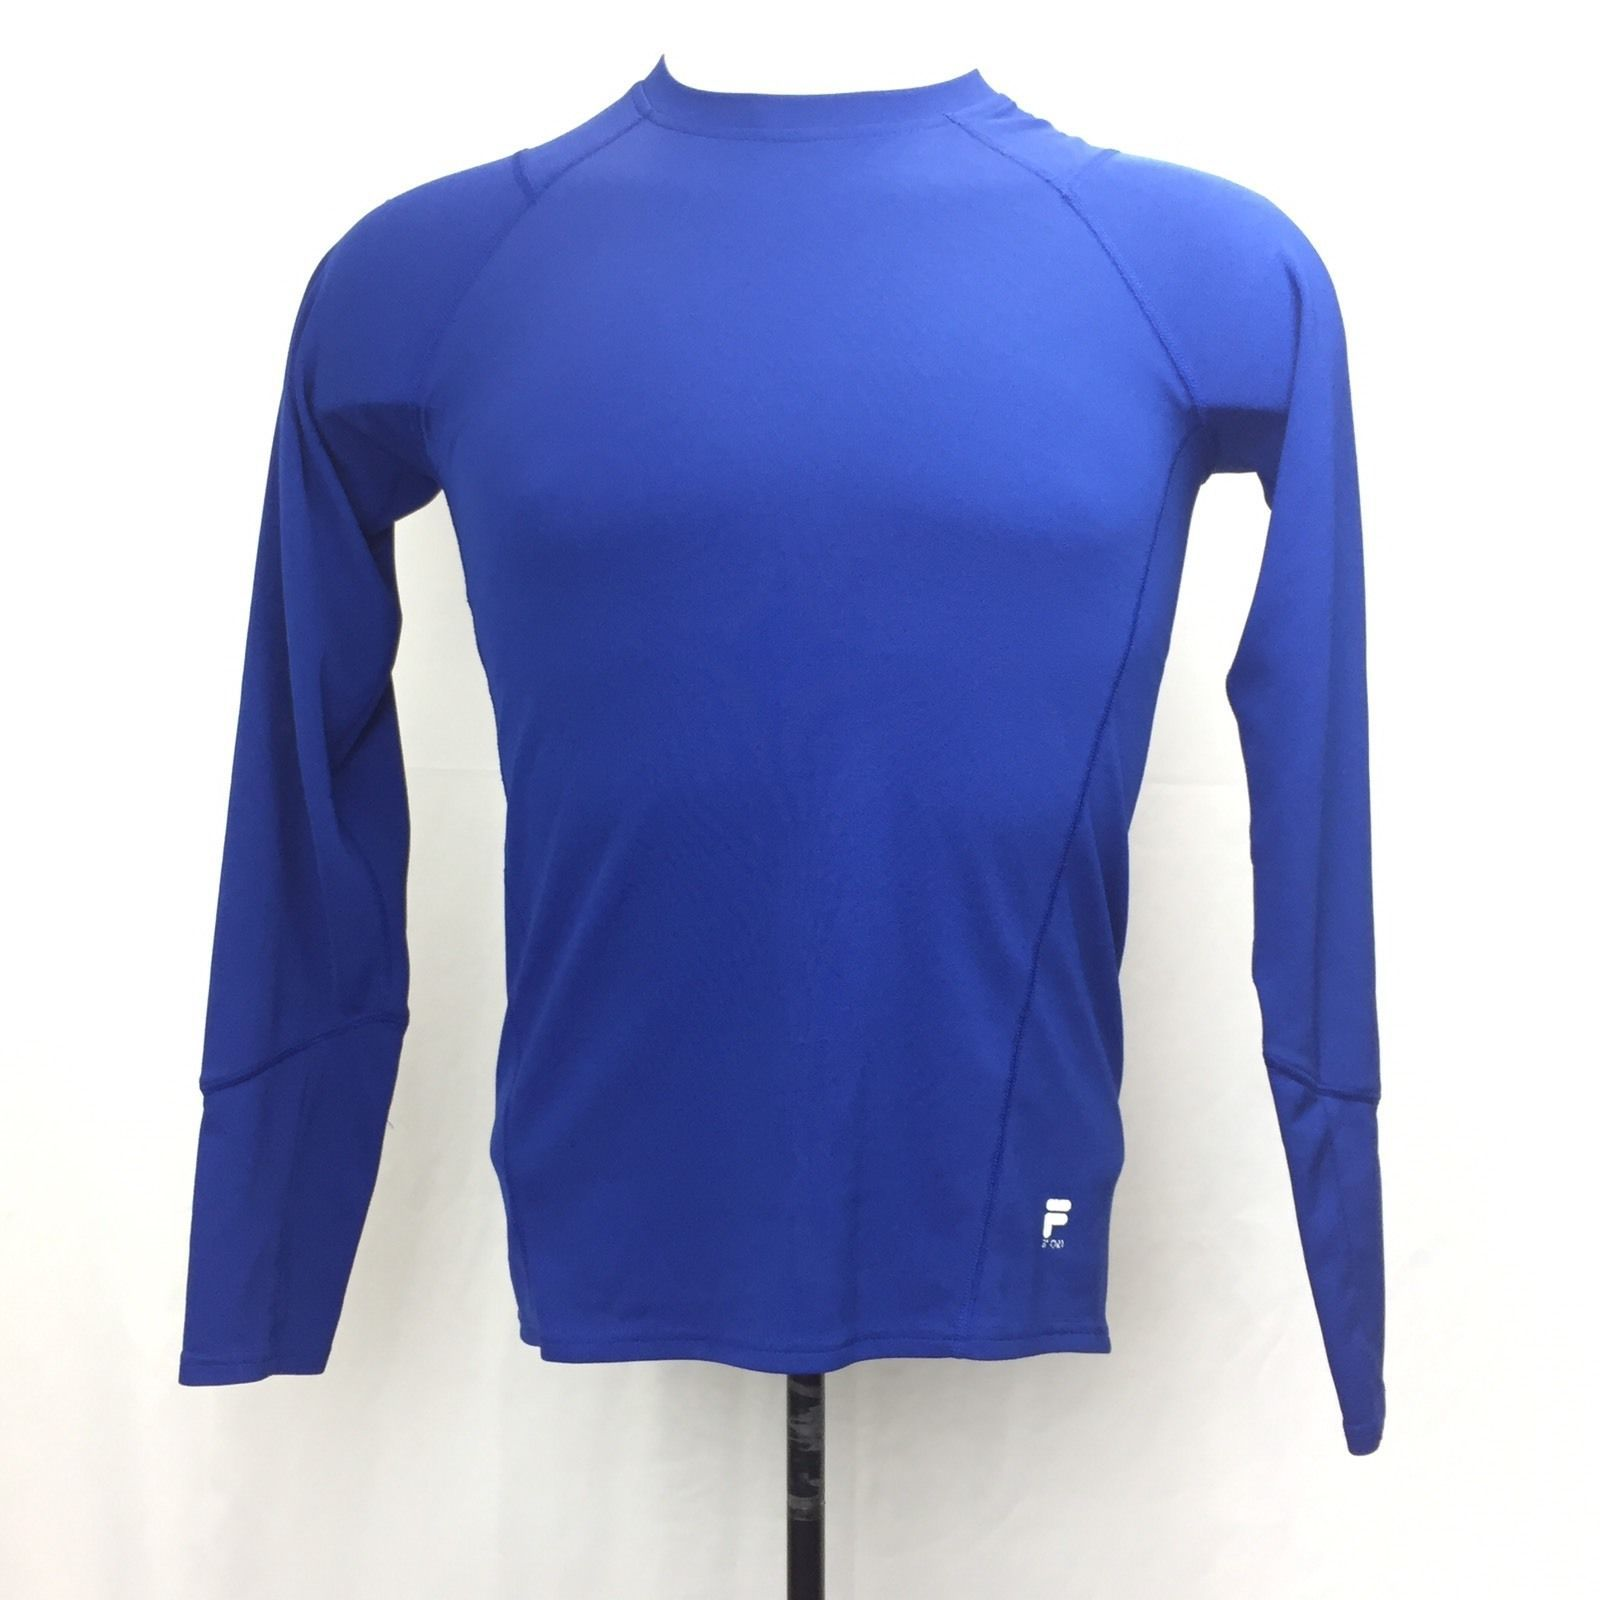 Boys Blue Fila Sport XL Sleeve Knit Top 18/20 - $11.03